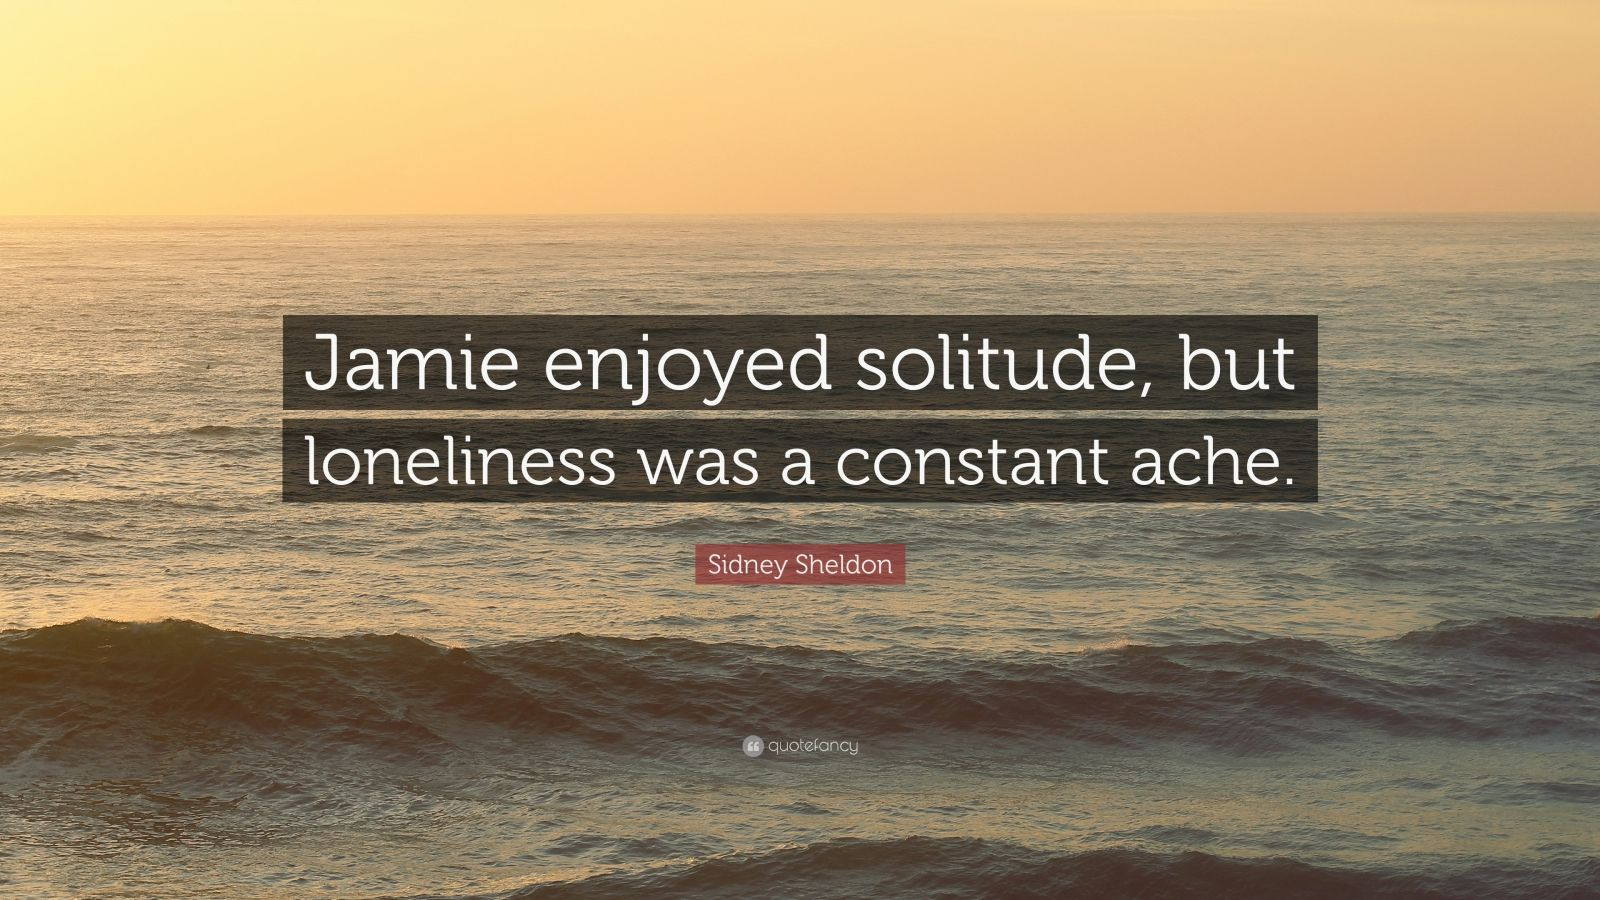 """Sidney Sheldon Quote: """"Jamie enjoyed solitude, but loneliness was a constant ache."""""""